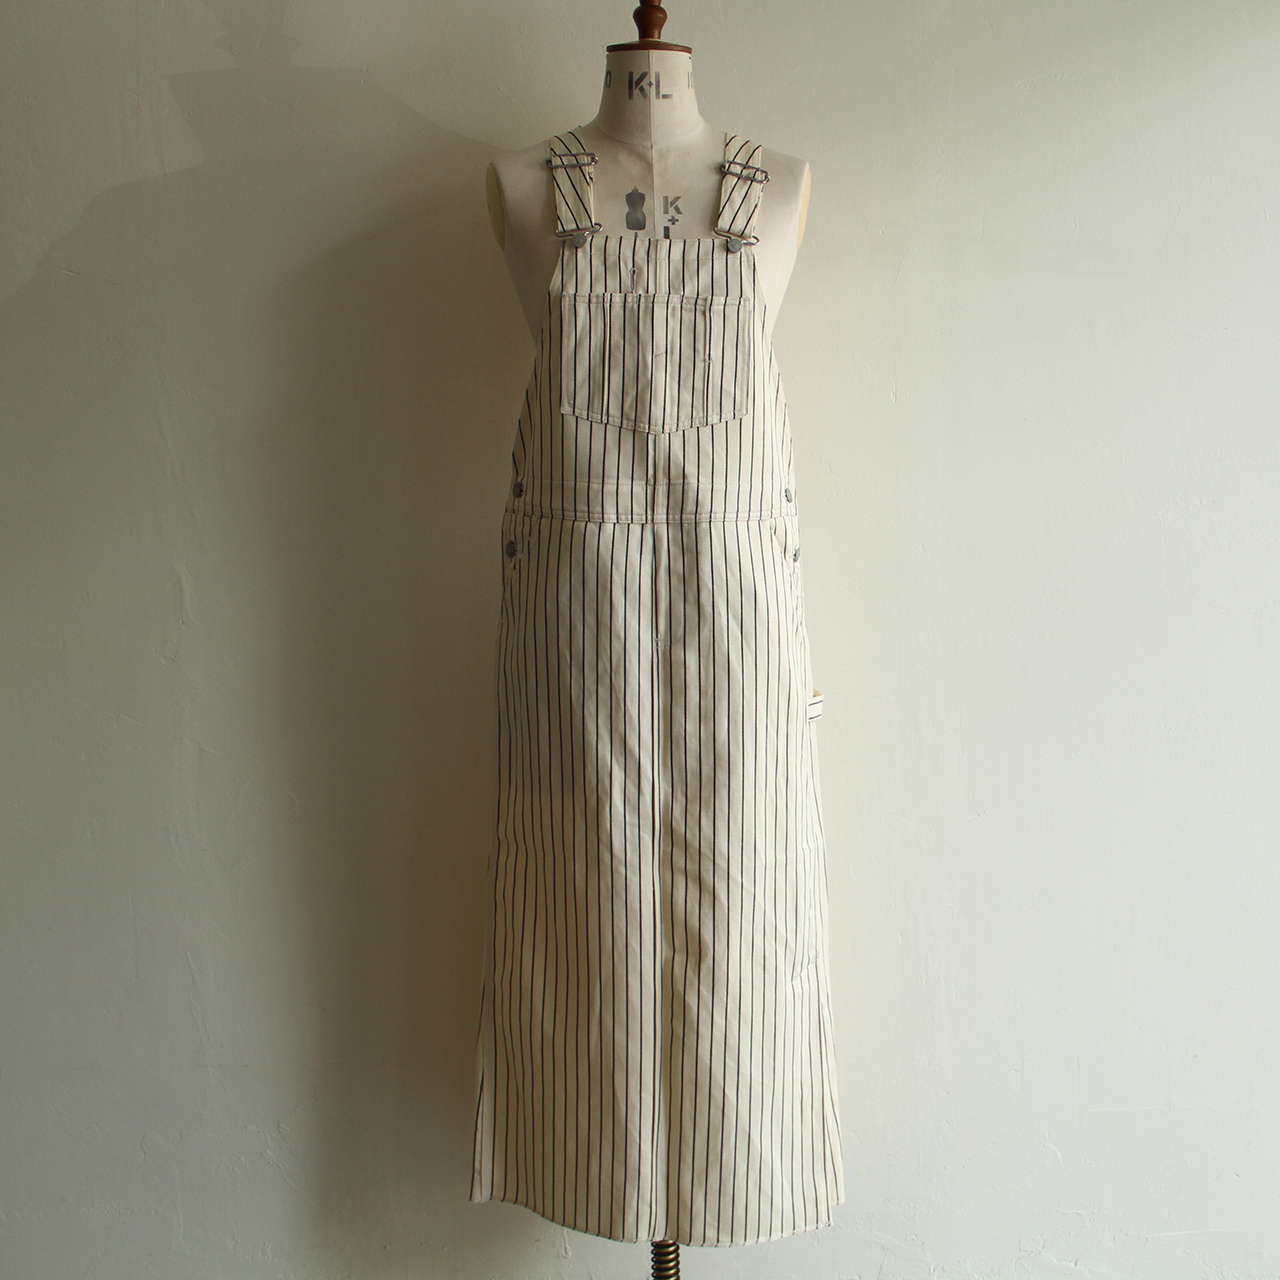 UNION LAUNCH【 womens 】stripe linen cotton overalls skirt